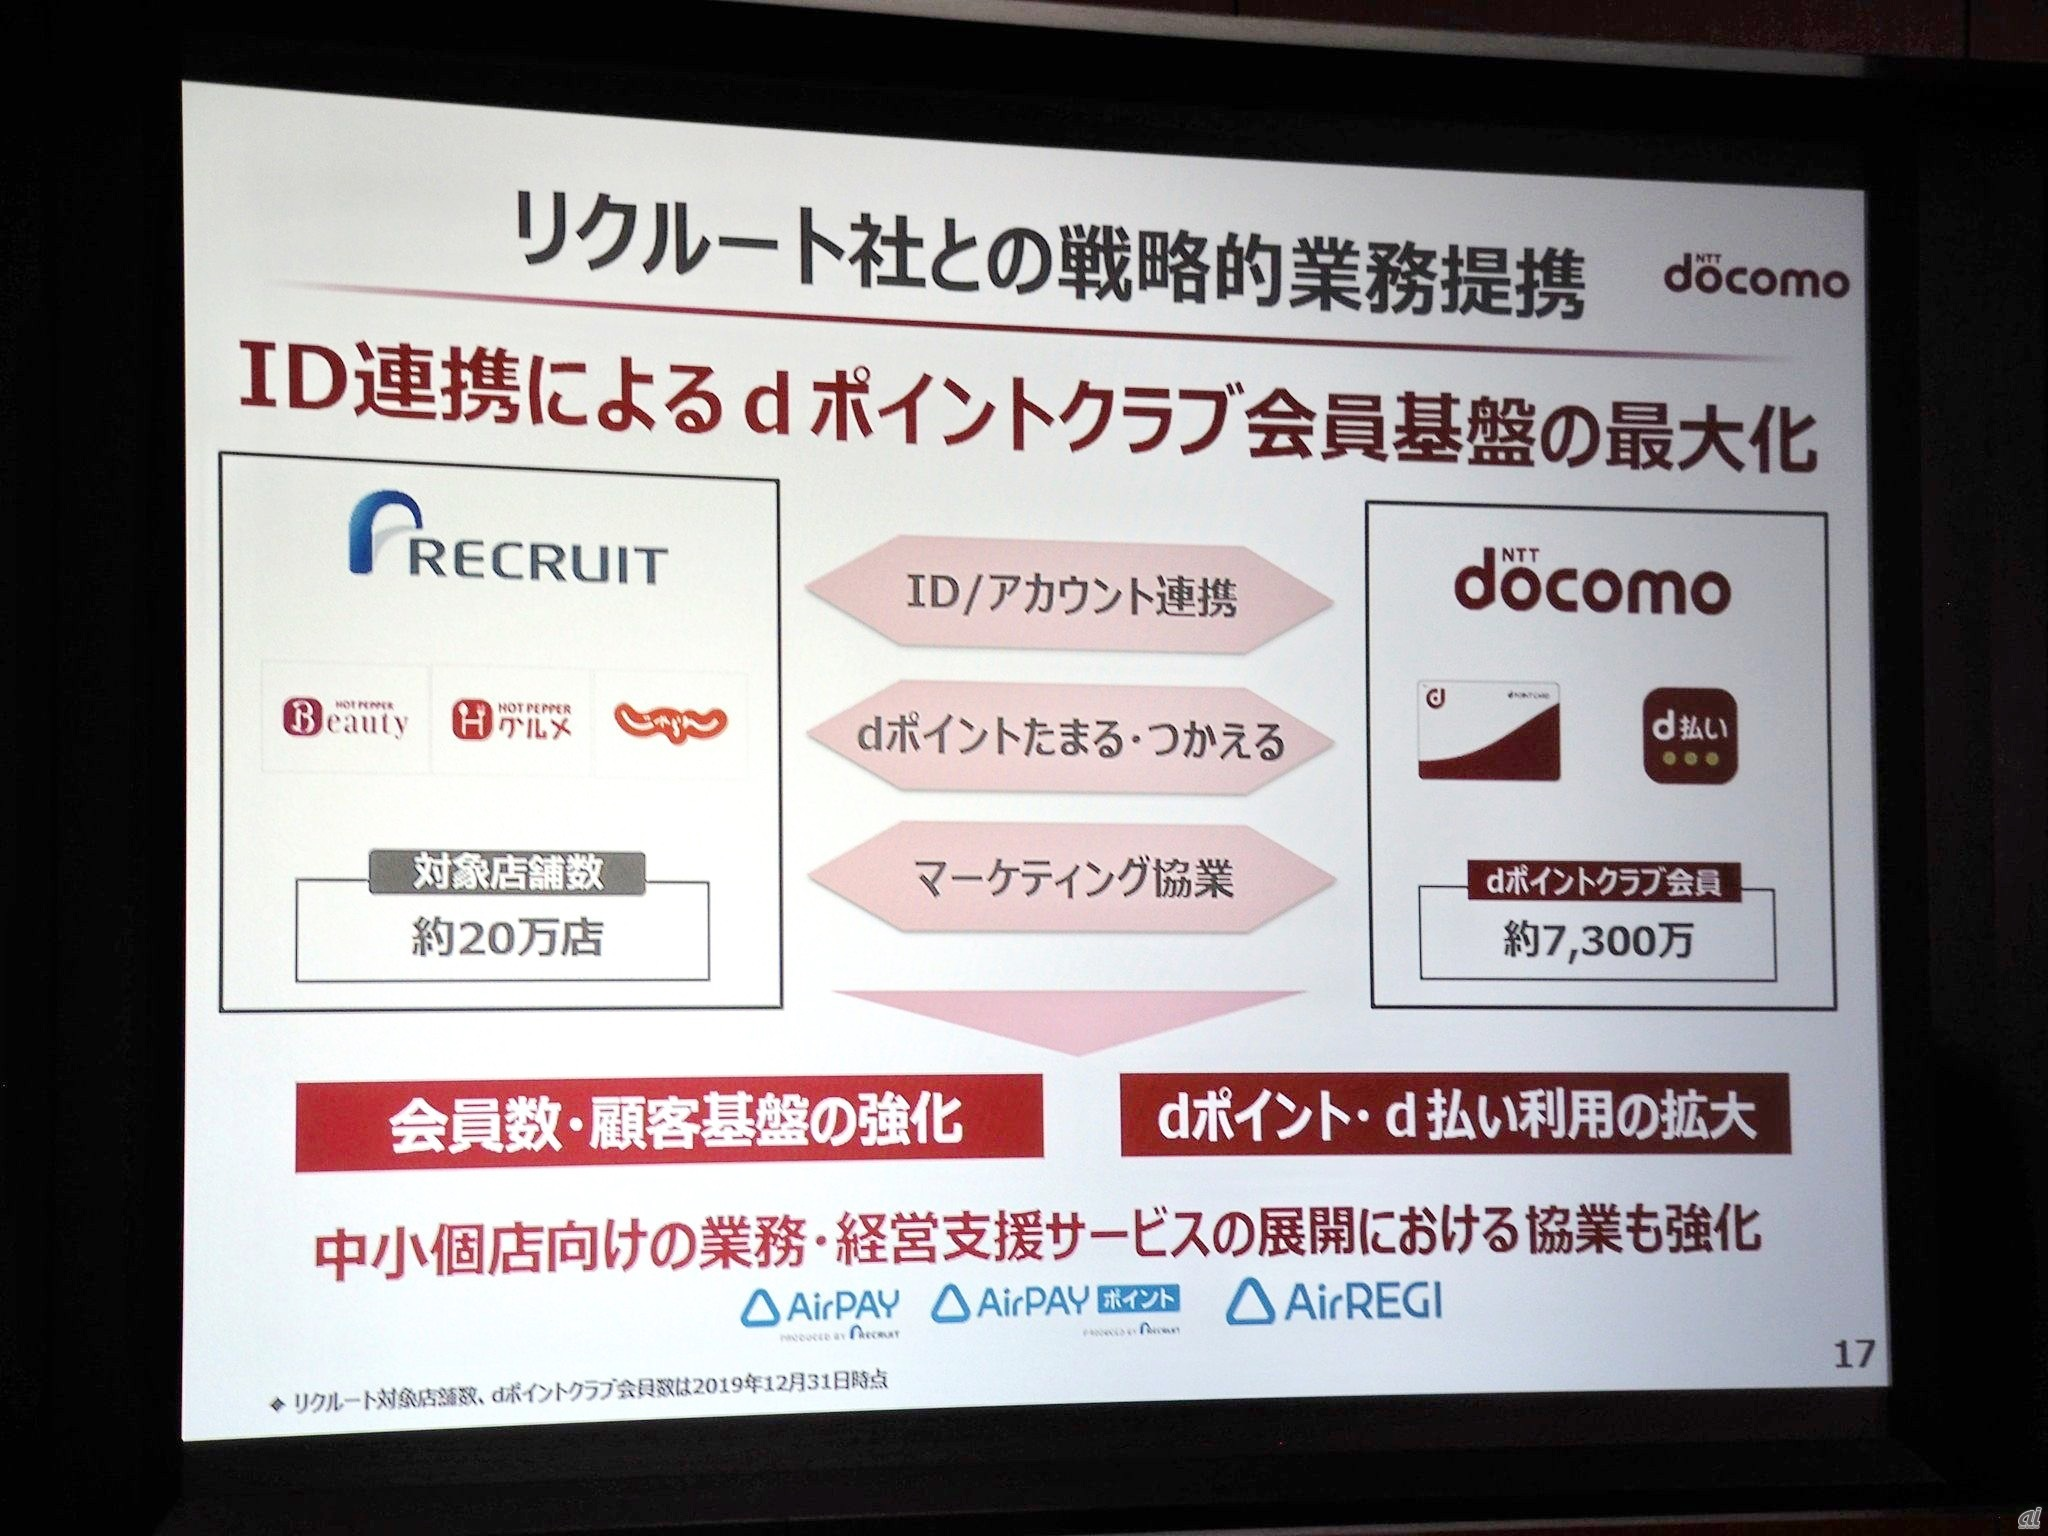 """DoCoMo has announced a partnership with Recruit, which has been focusing on Ponta. Recruit services such as """"Jalan"""" will also be able to use d points"""